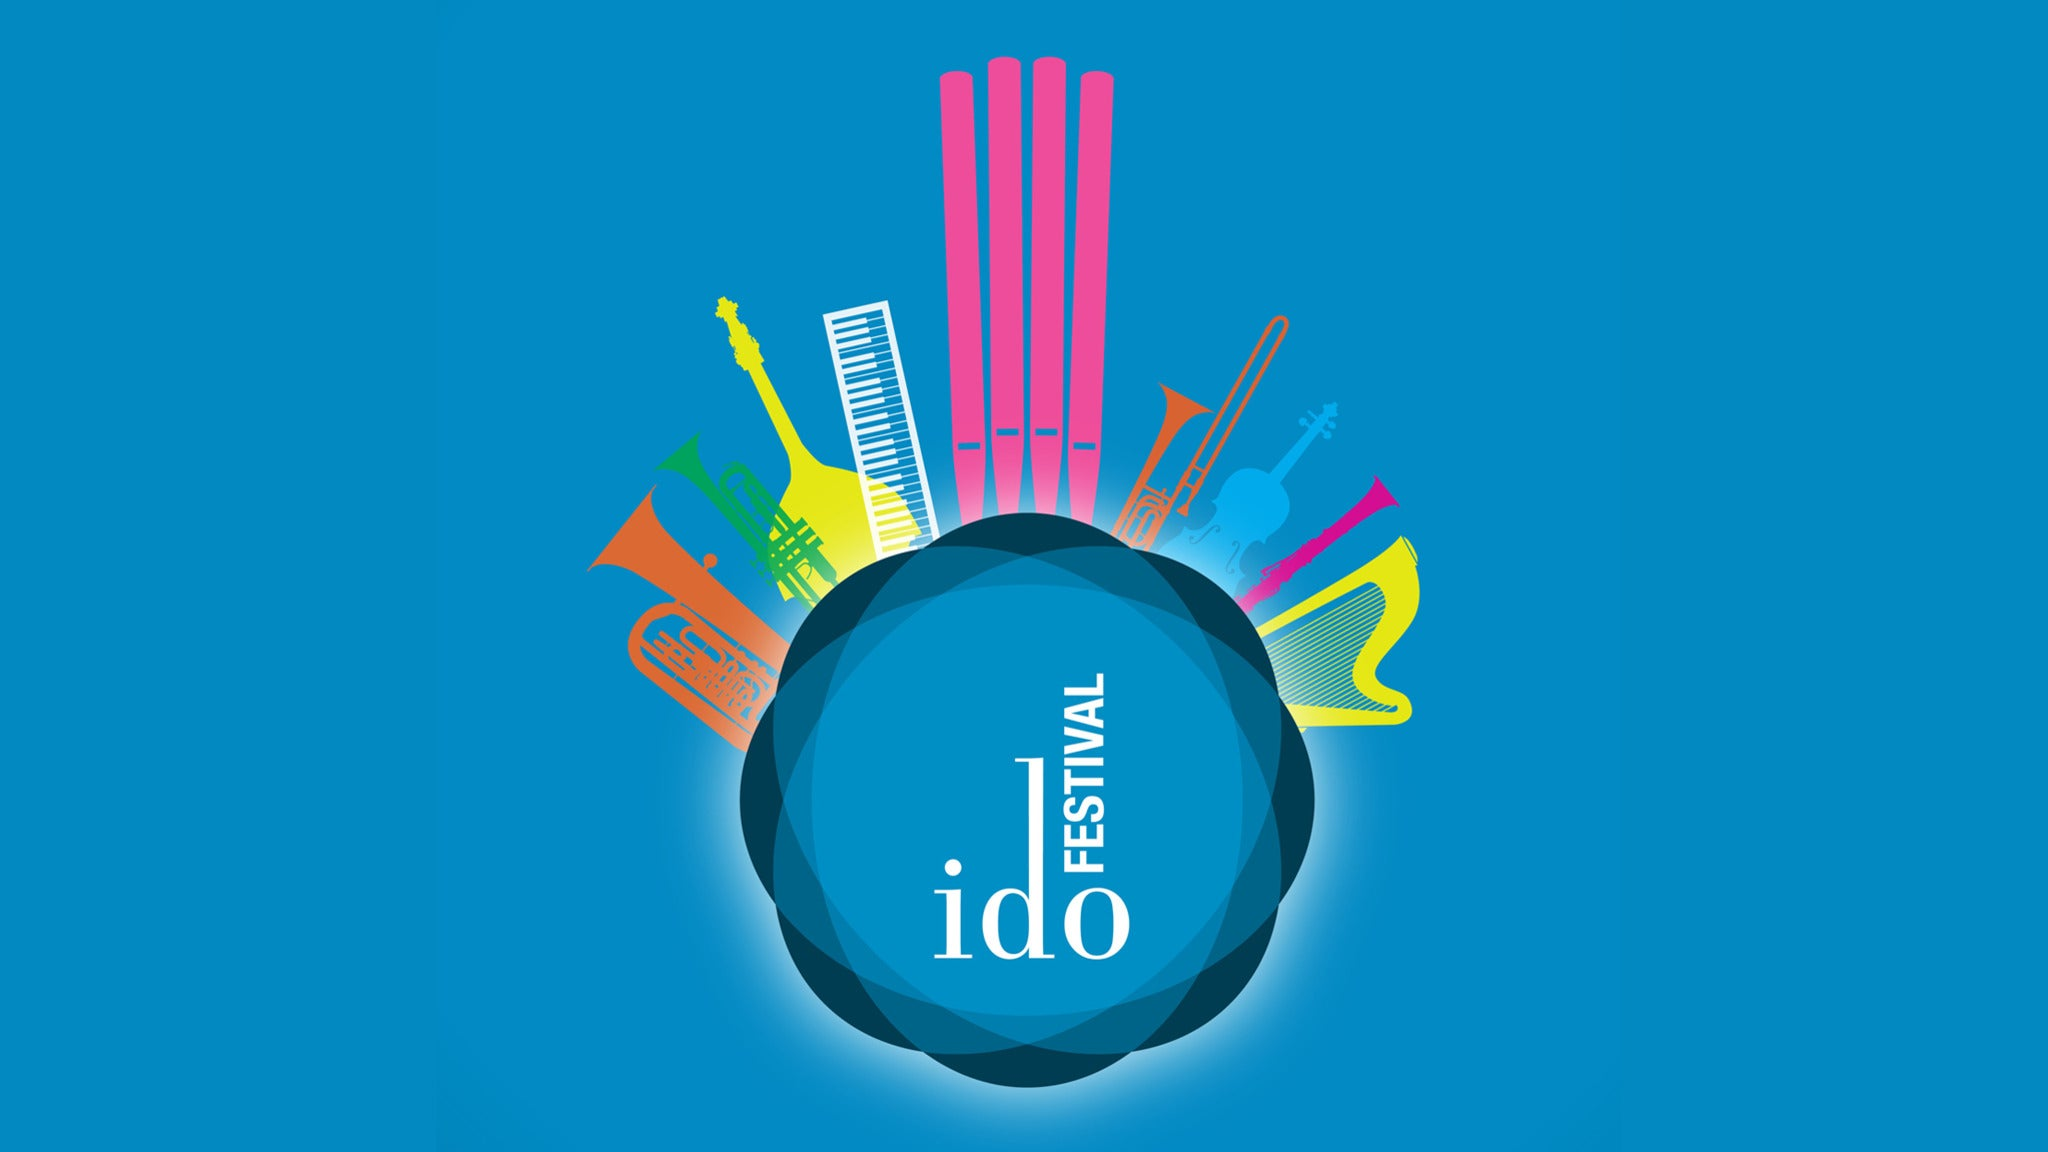 IDO Festival - The Buggs & LivLars -... something different now